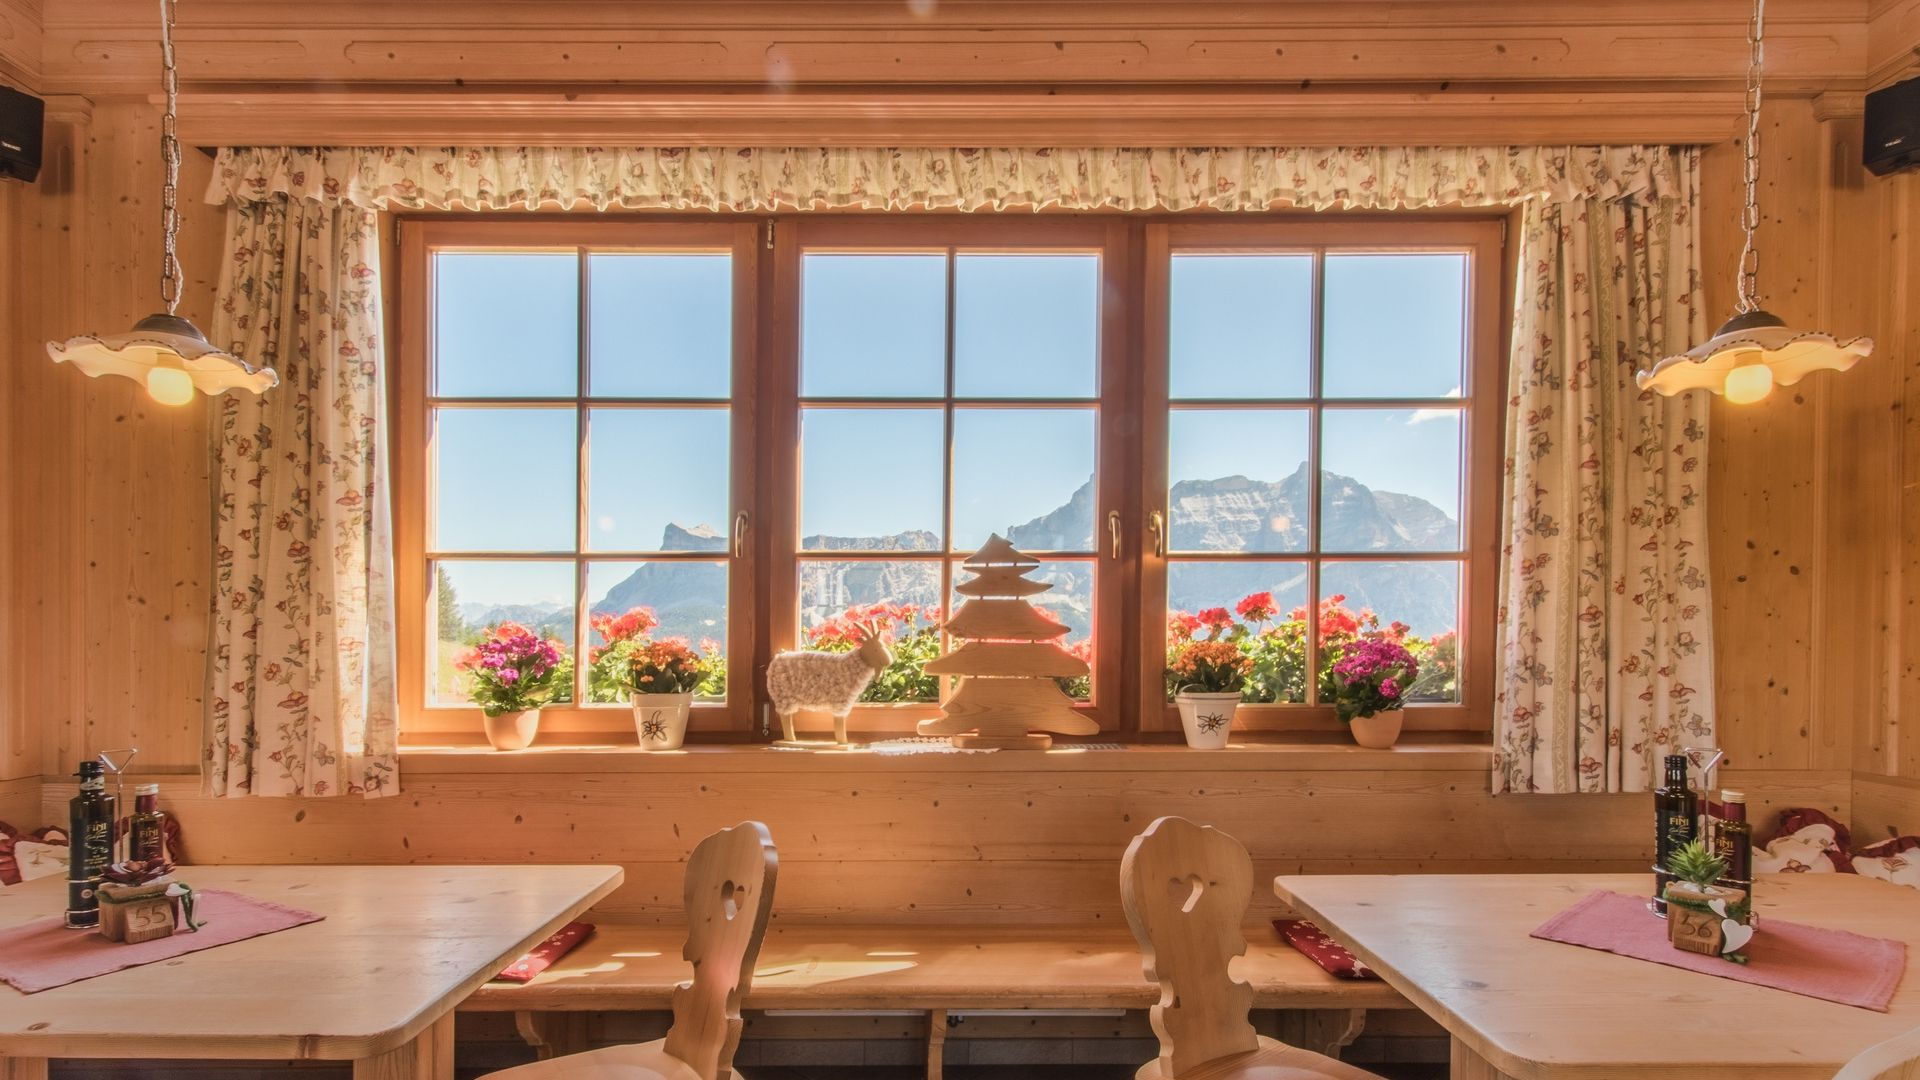 Image: I Tablà Mountain Restaurant in Alta Badia